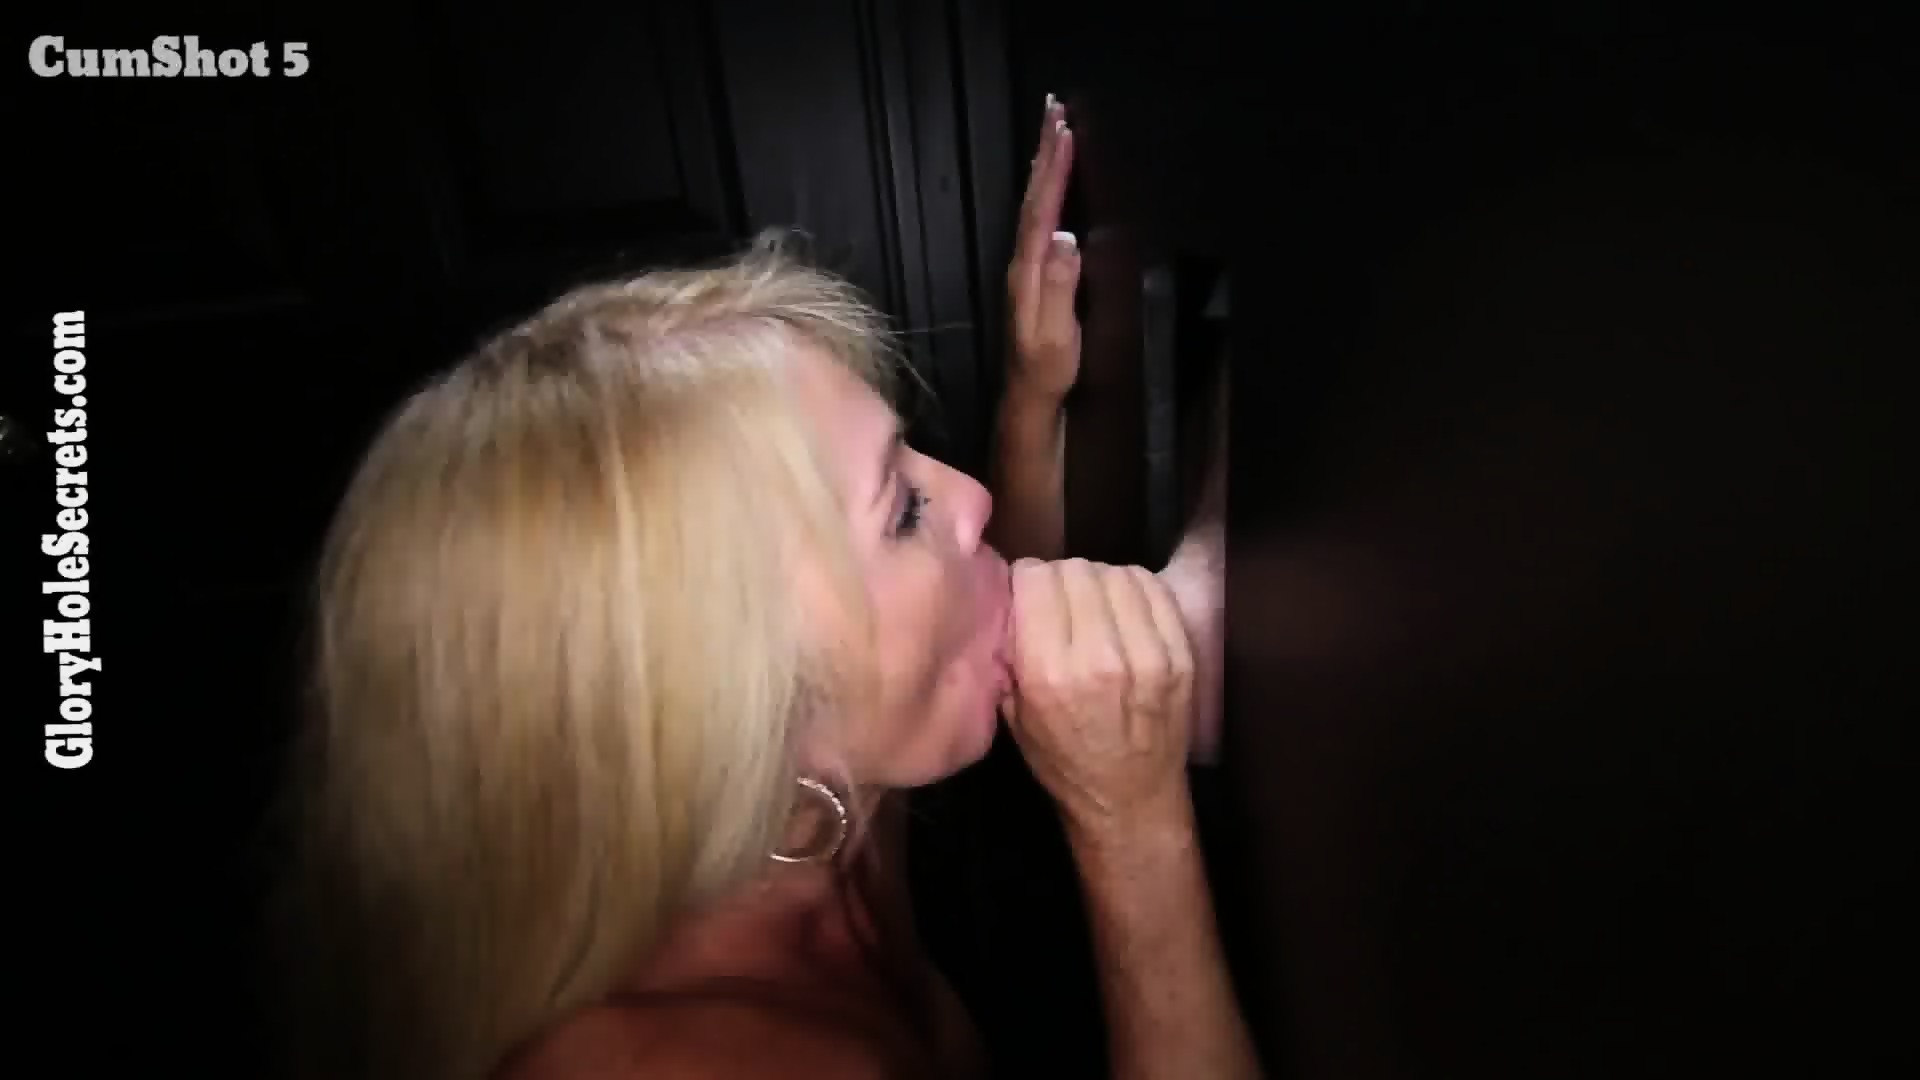 Lady sonya interracial blowjob